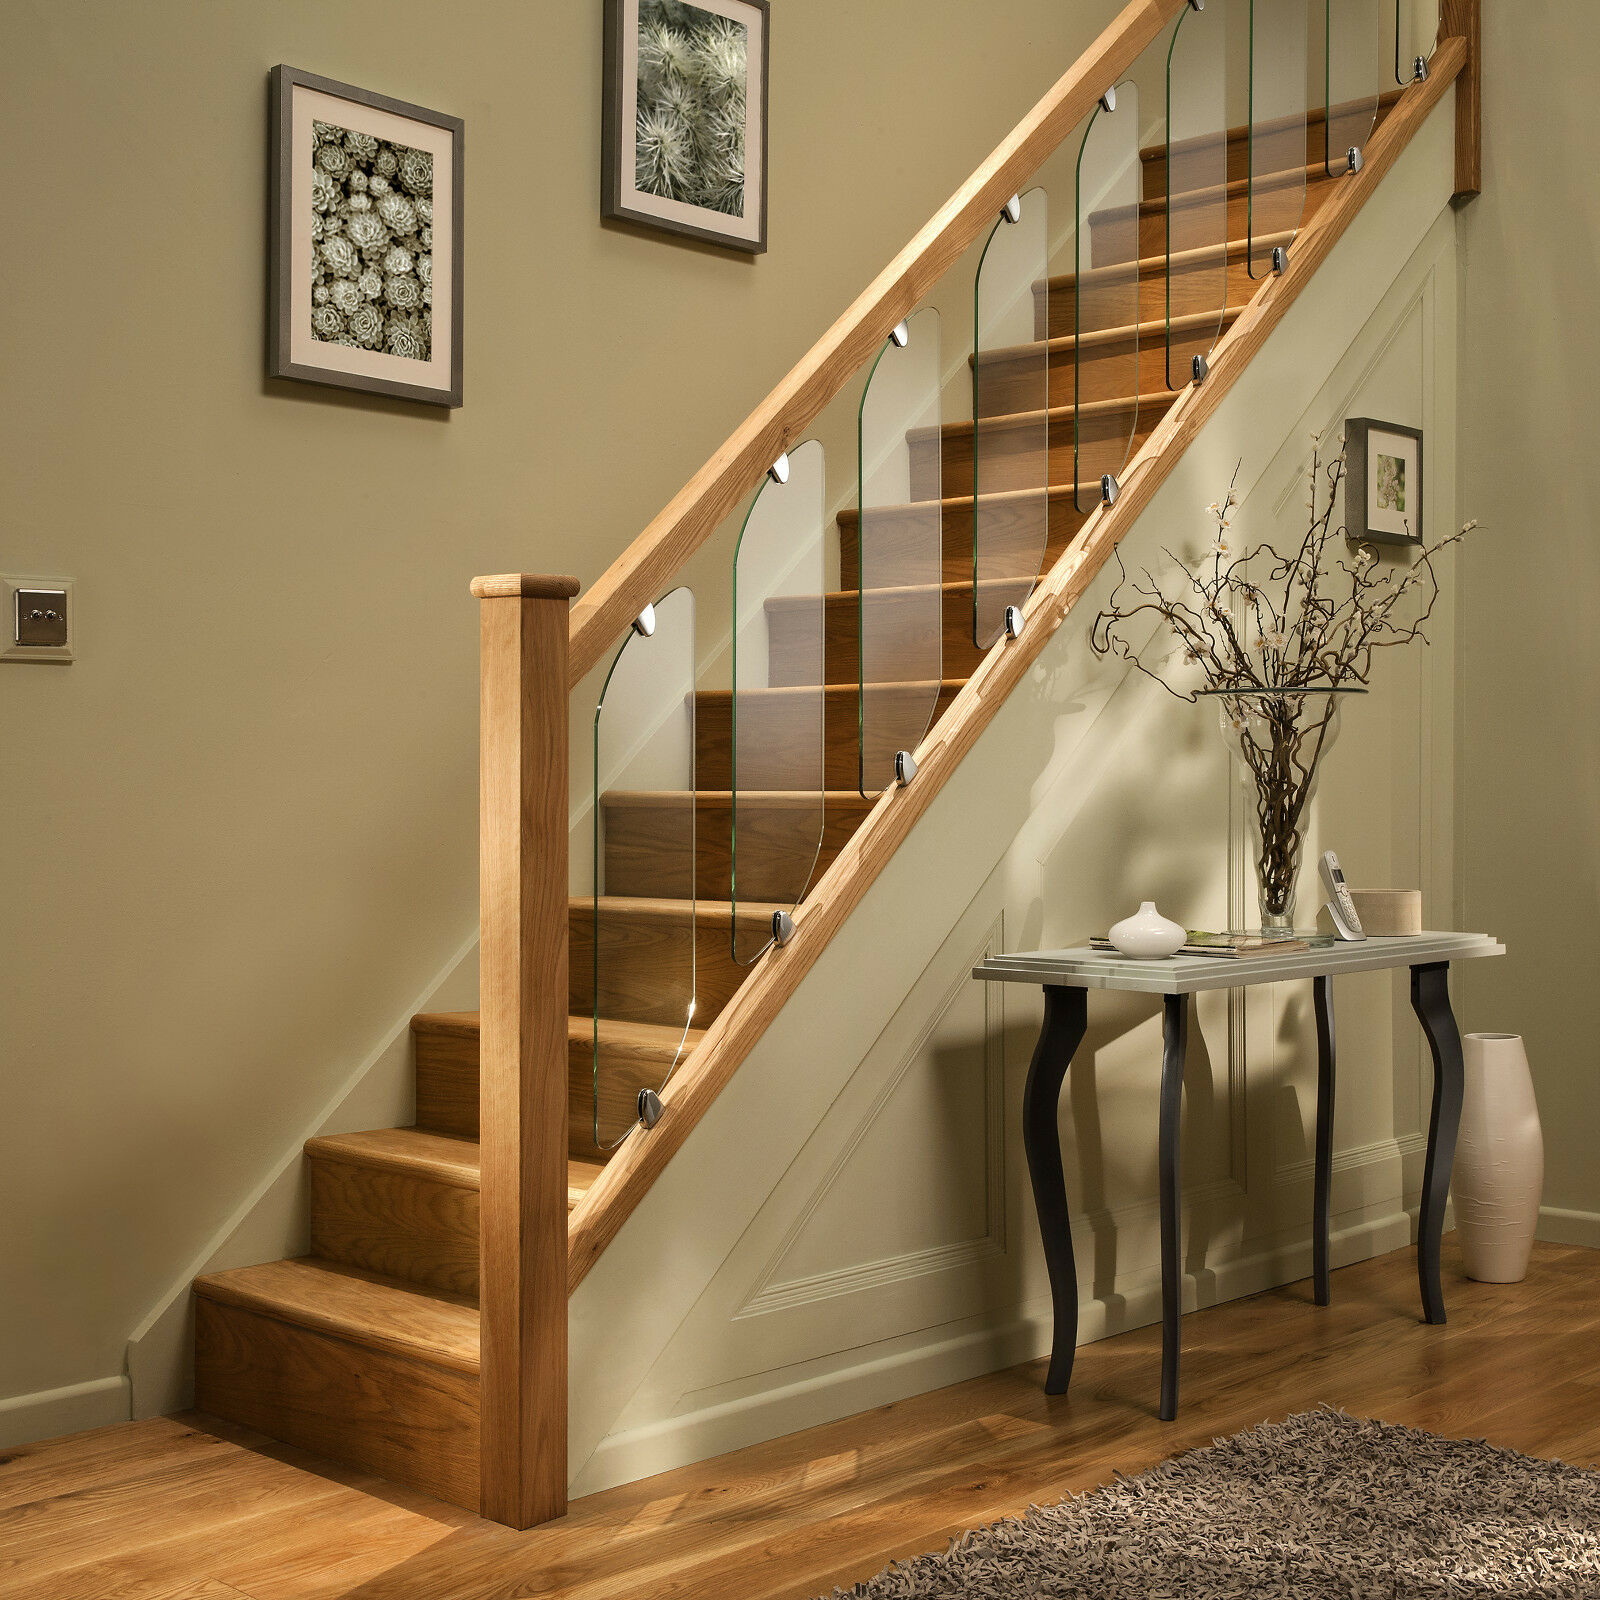 Staircases Stairways And Stairway: Axxys Clarity Glass Panels, Chrome Or Brushed Clamps Stair